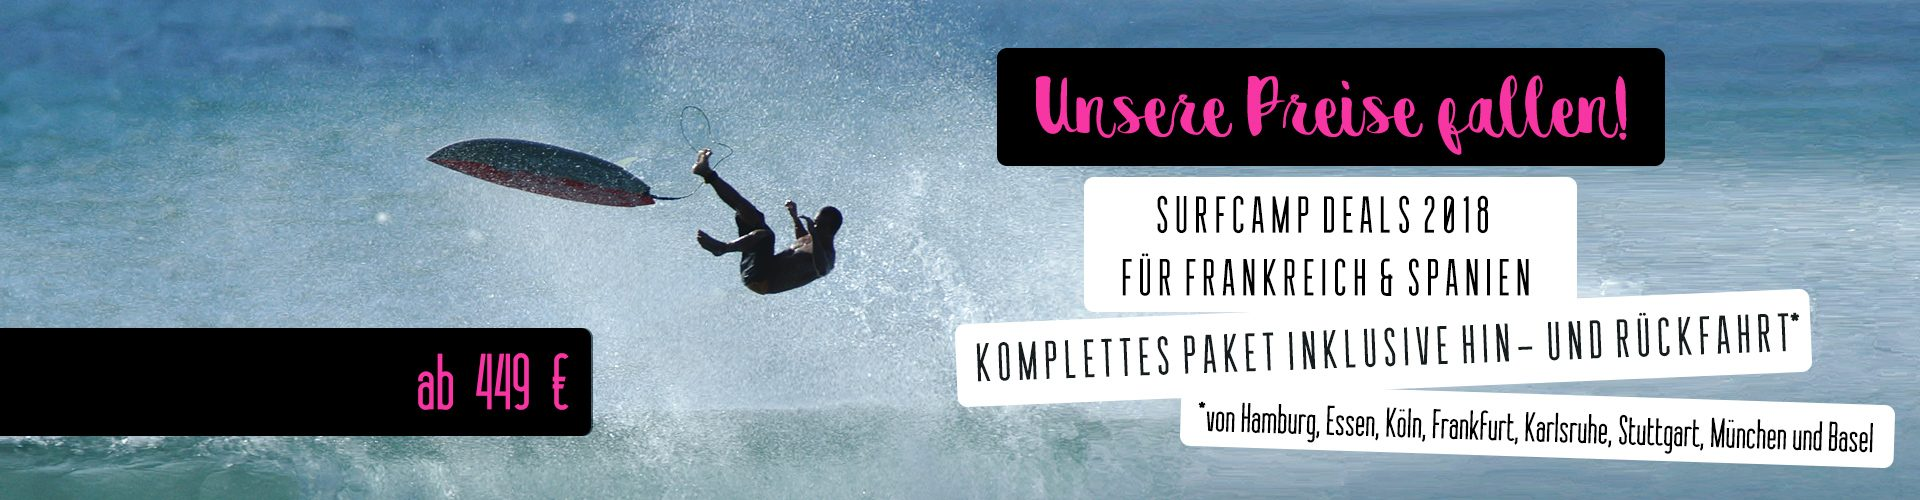 Surfcamp Deals